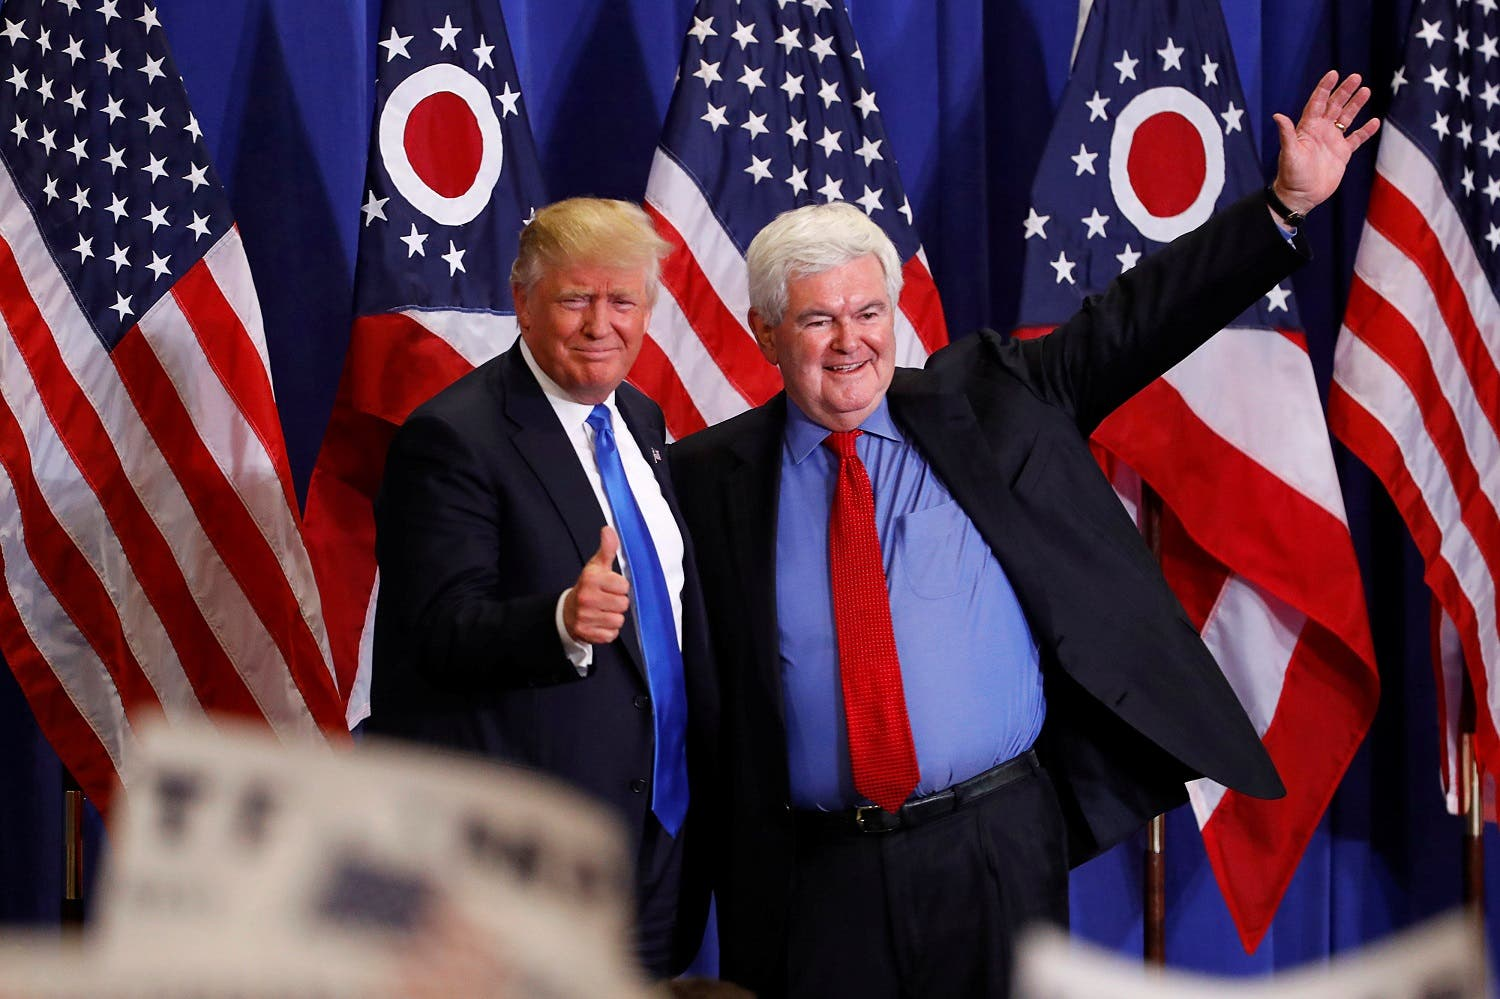 Former Speaker of the House Newt Gingrich greets U.S. Republican presidential candidate Donald Trump at a rally at the Sharonville Convention Center in Cincinnati, Ohio July 6, 2016. REUTERS